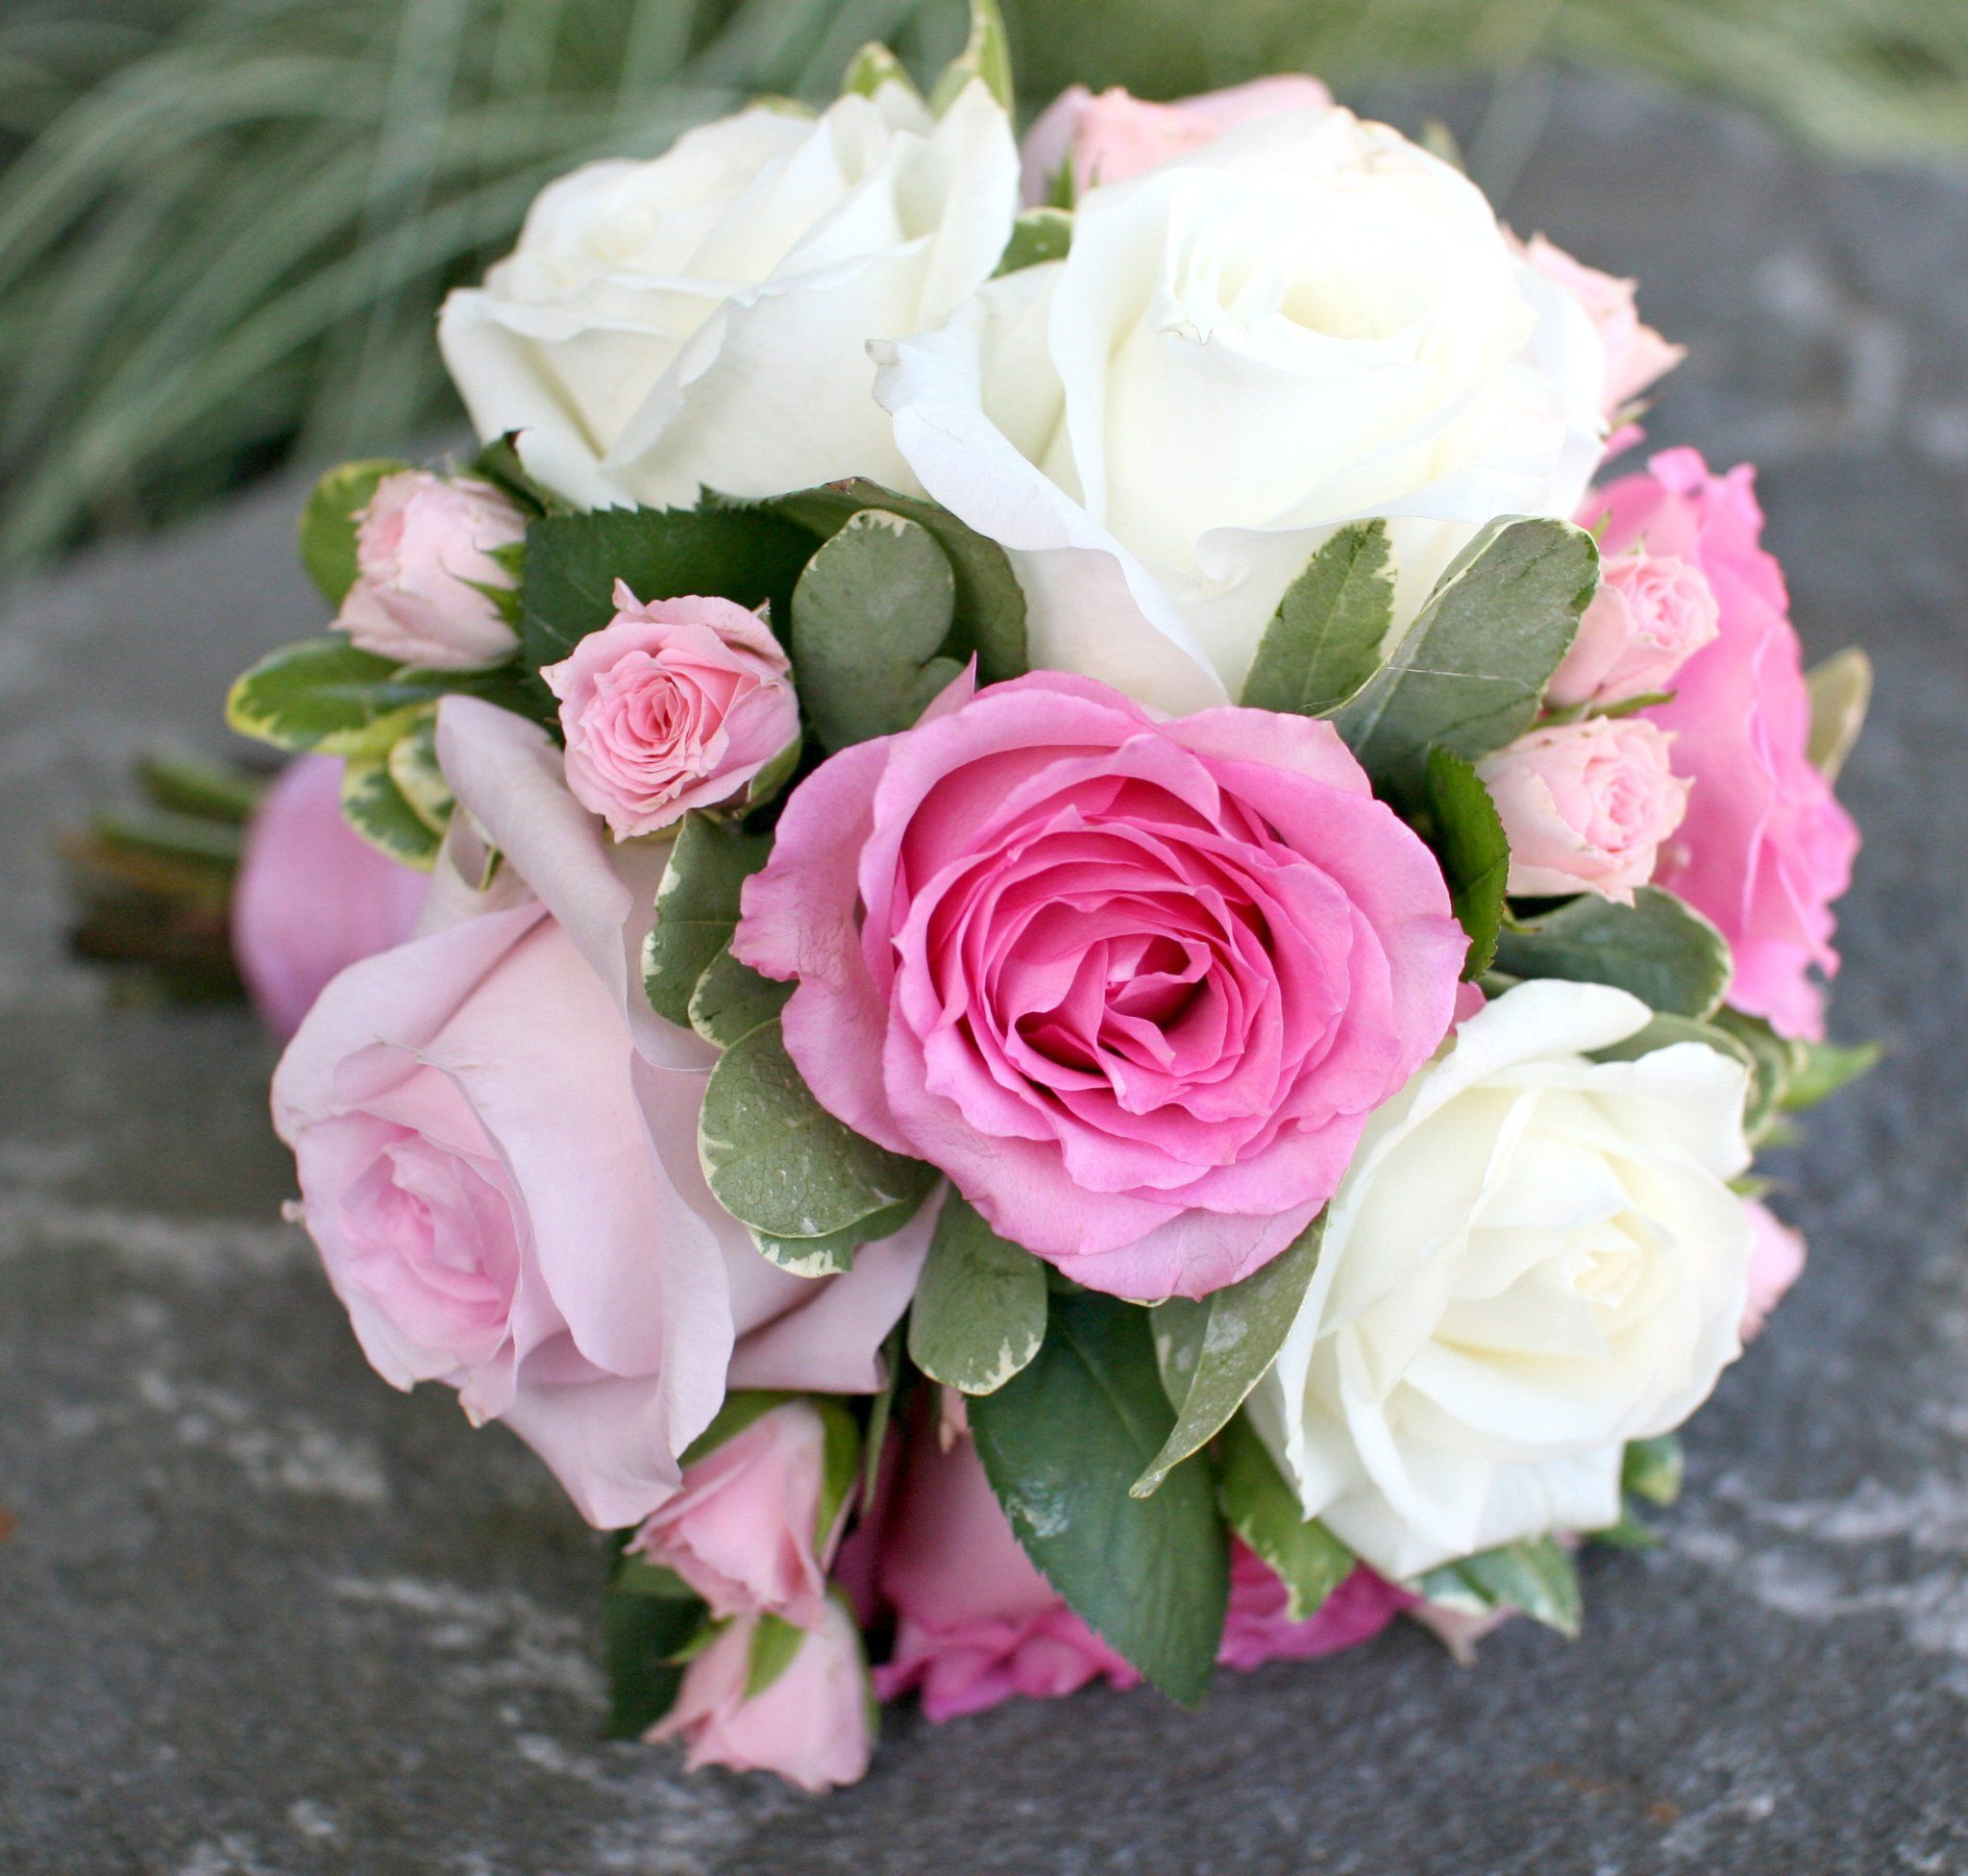 Pink white rose bouquet bb0590 small pink and white rose bouquet pink white rose bouquet bb0590 small pink and white rose bouquet roses mightylinksfo